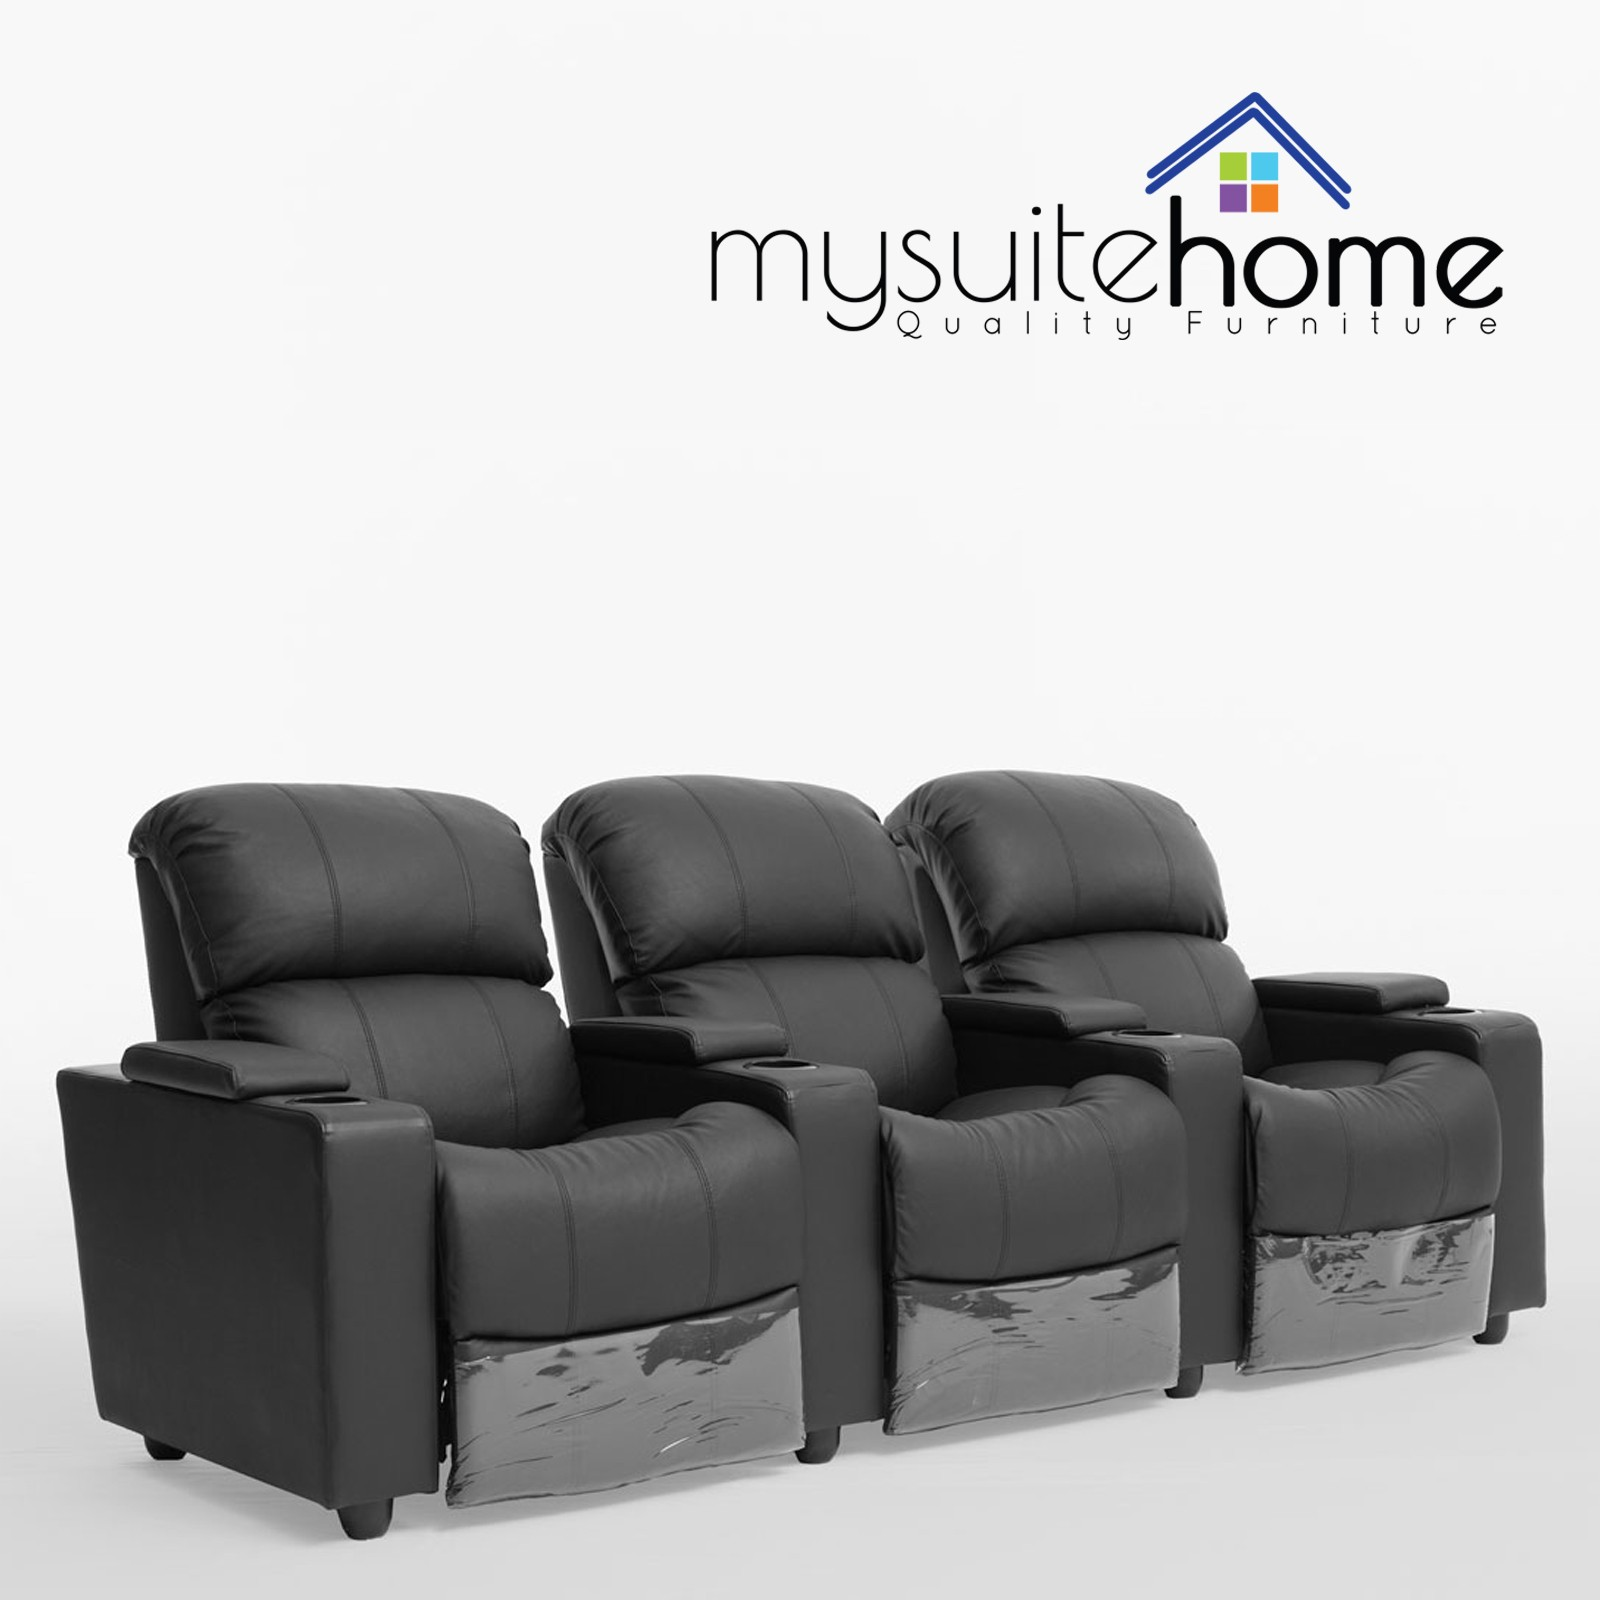 Sophie Brand New Leather 3 Seater Recliner Home Theater